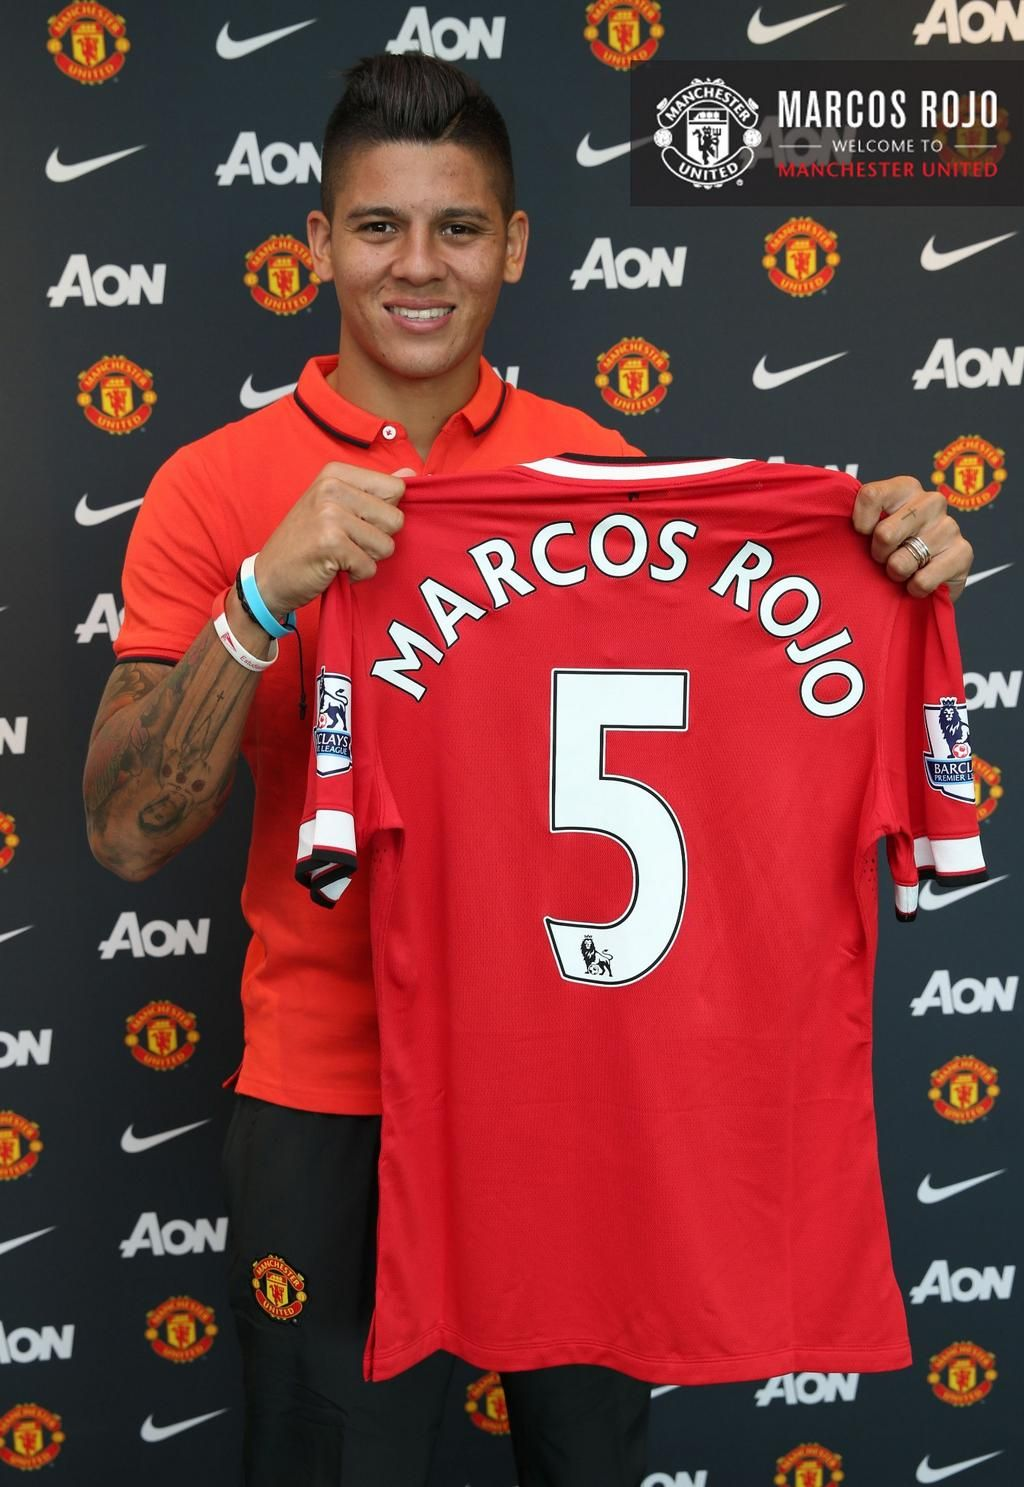 Marcos Rojo Will Wear The No 5 Shirt For Manchester United Rojoisred Manchester United Manchester United Players Manchester United Football Club